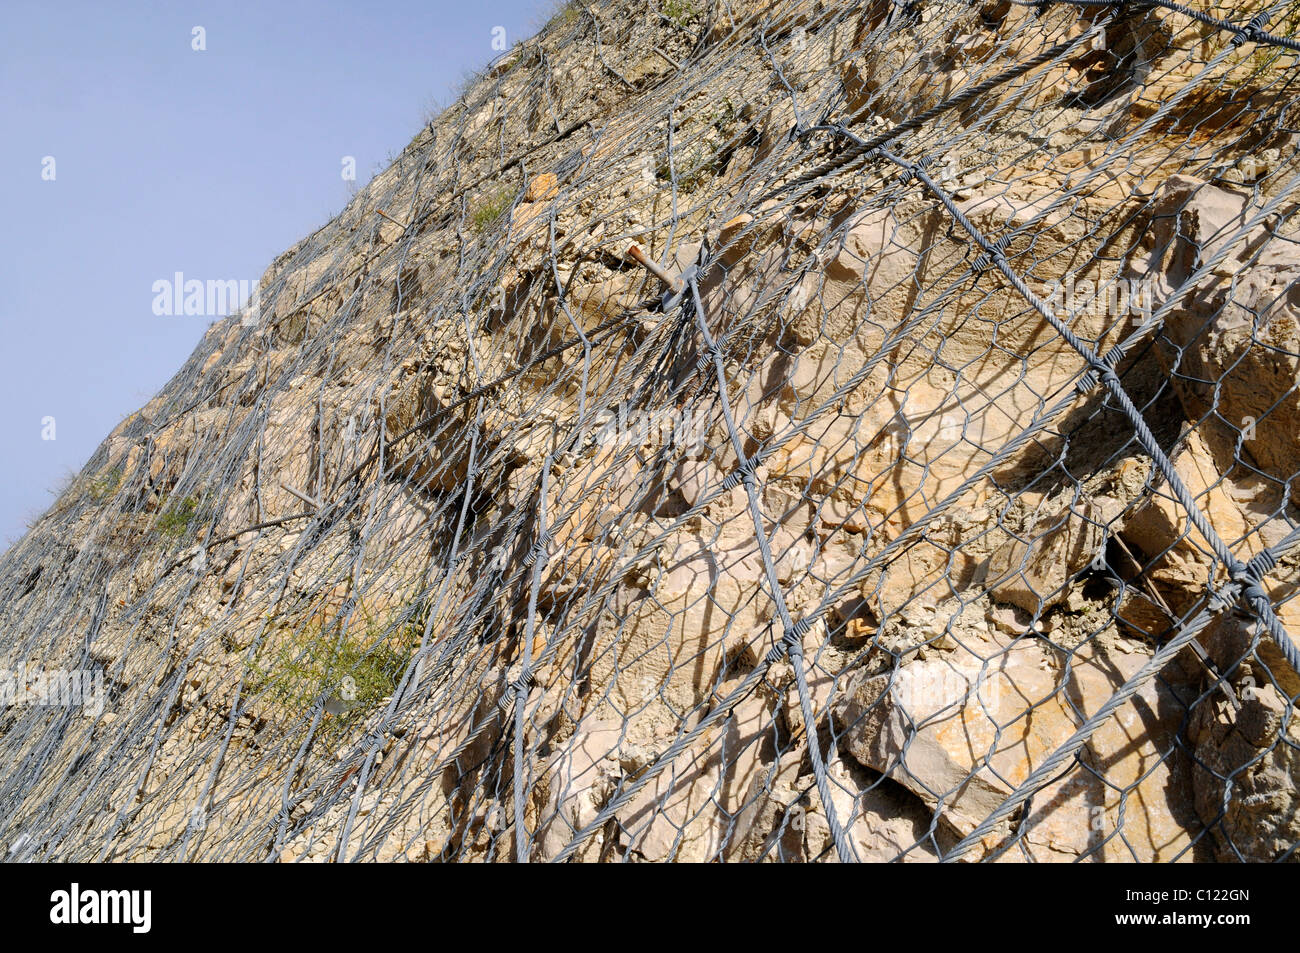 Wire mesh securing a slope from rockfall or landslide, Costa Blanca, Alicante province, Spain, Europe Stock Photo